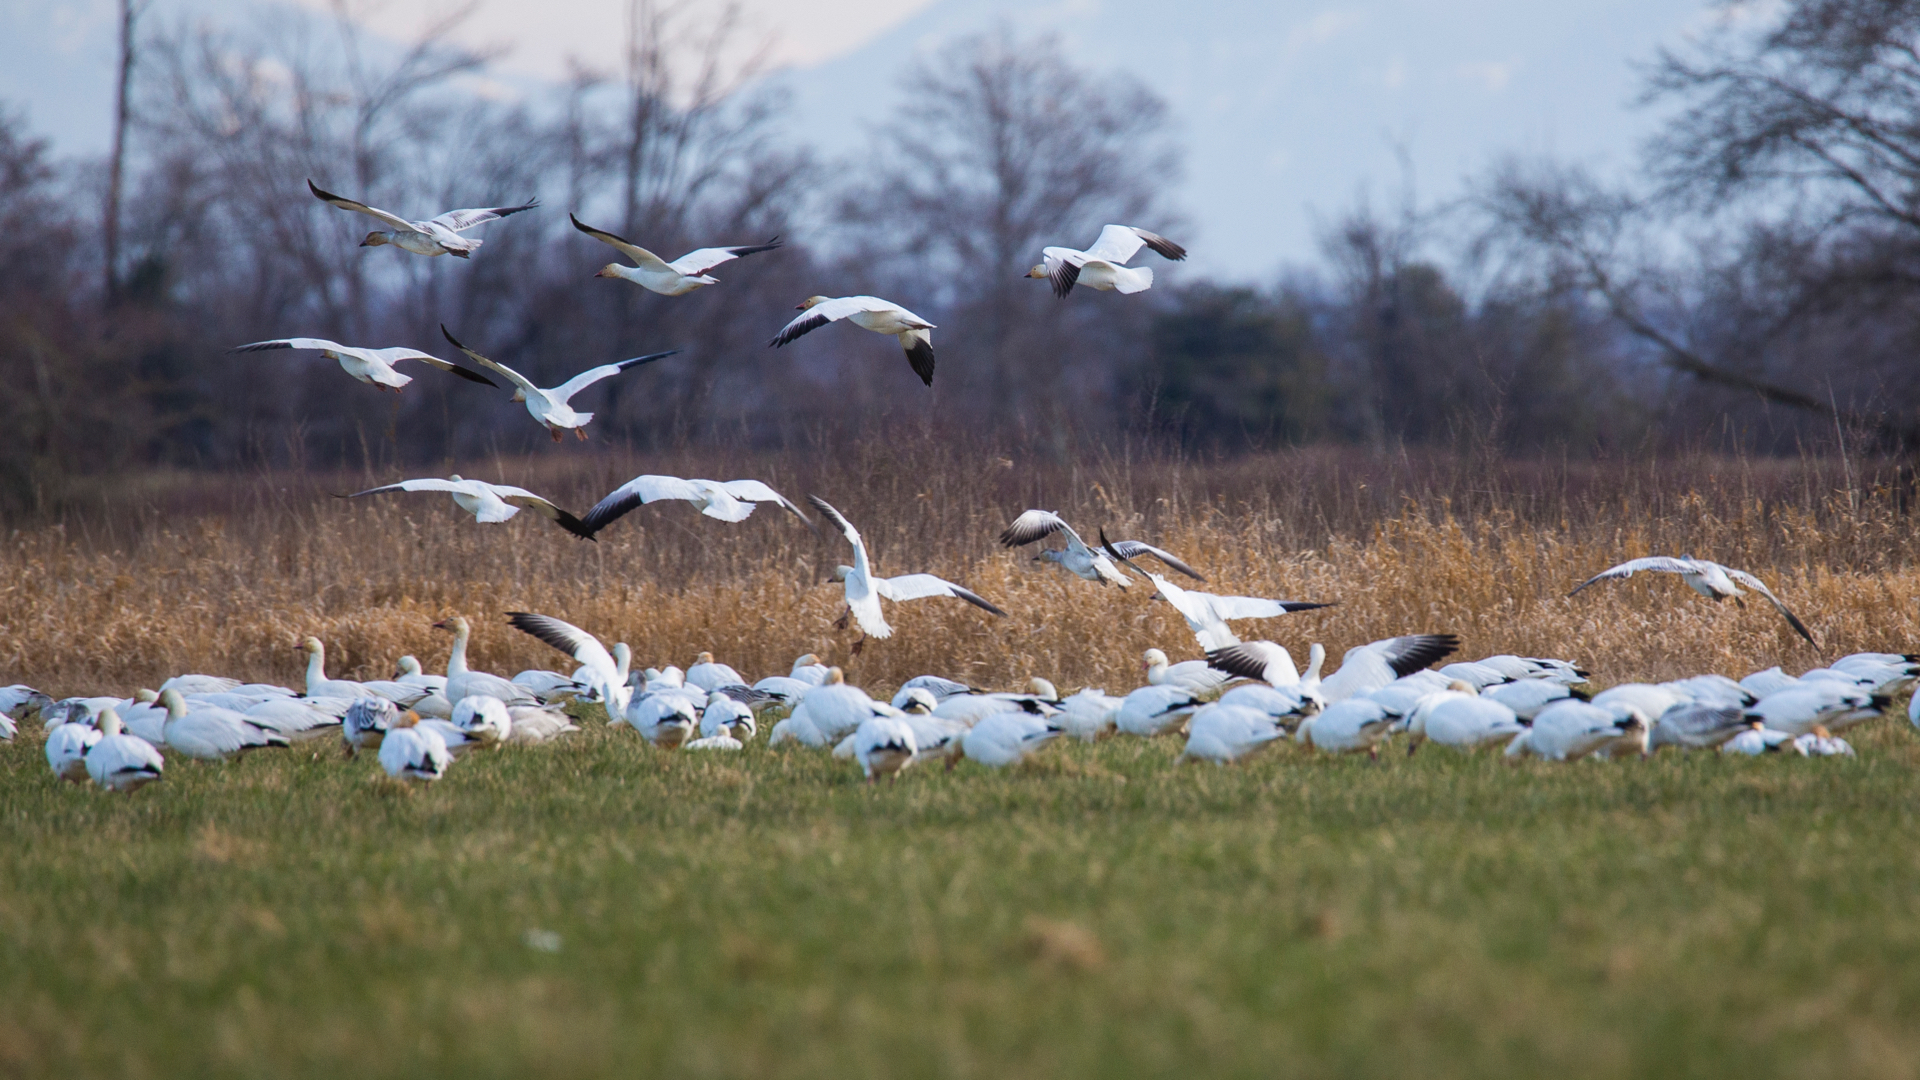 There was a good sized flock of snow geese in the fields close to the entrance.